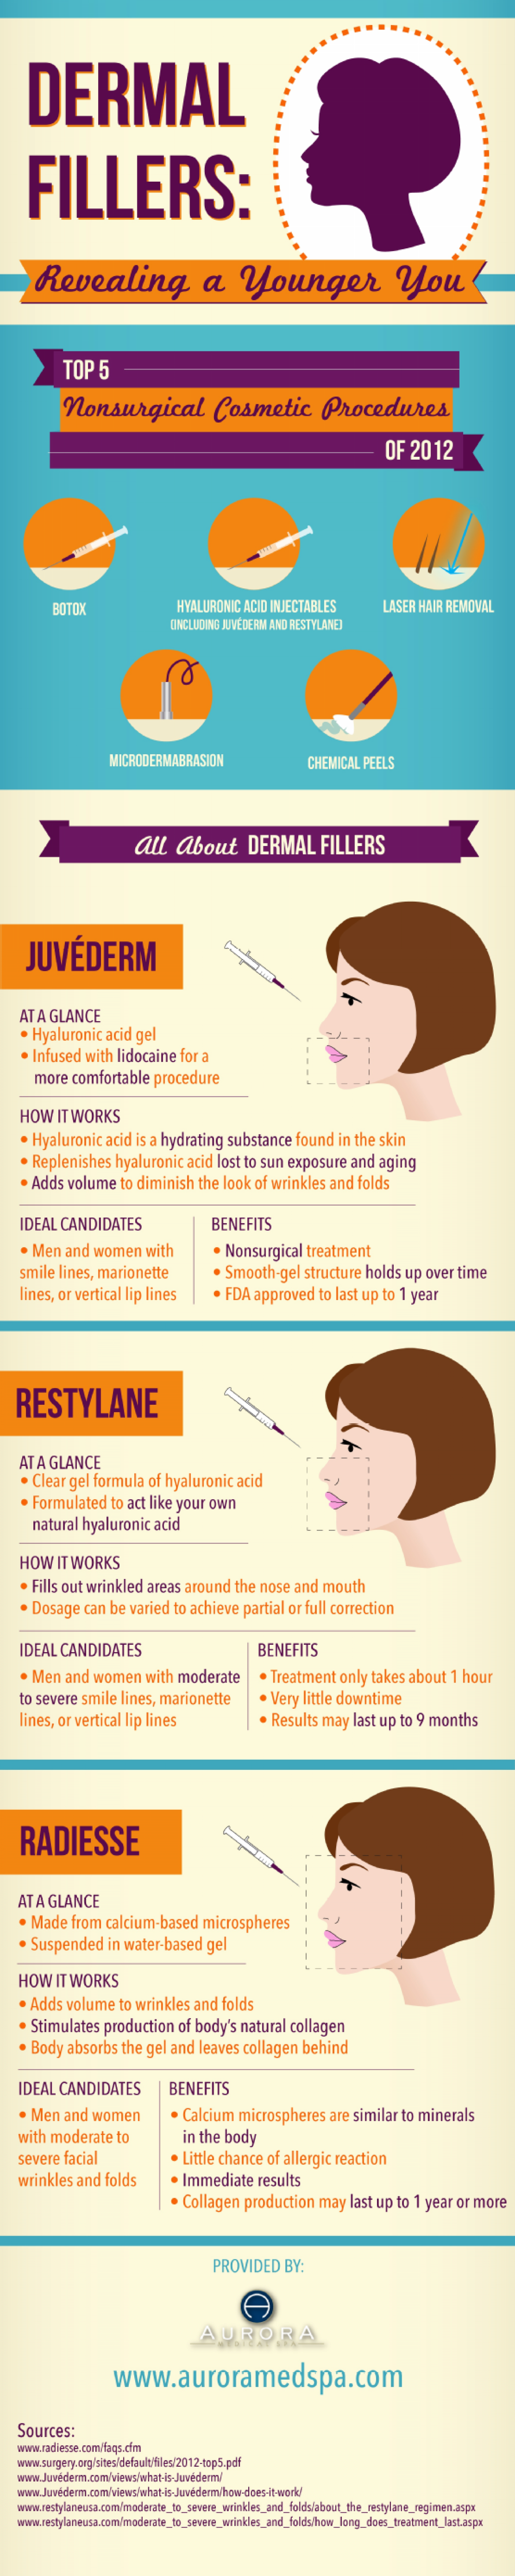 Dermal Fillers: Revealing a Younger You Infographic